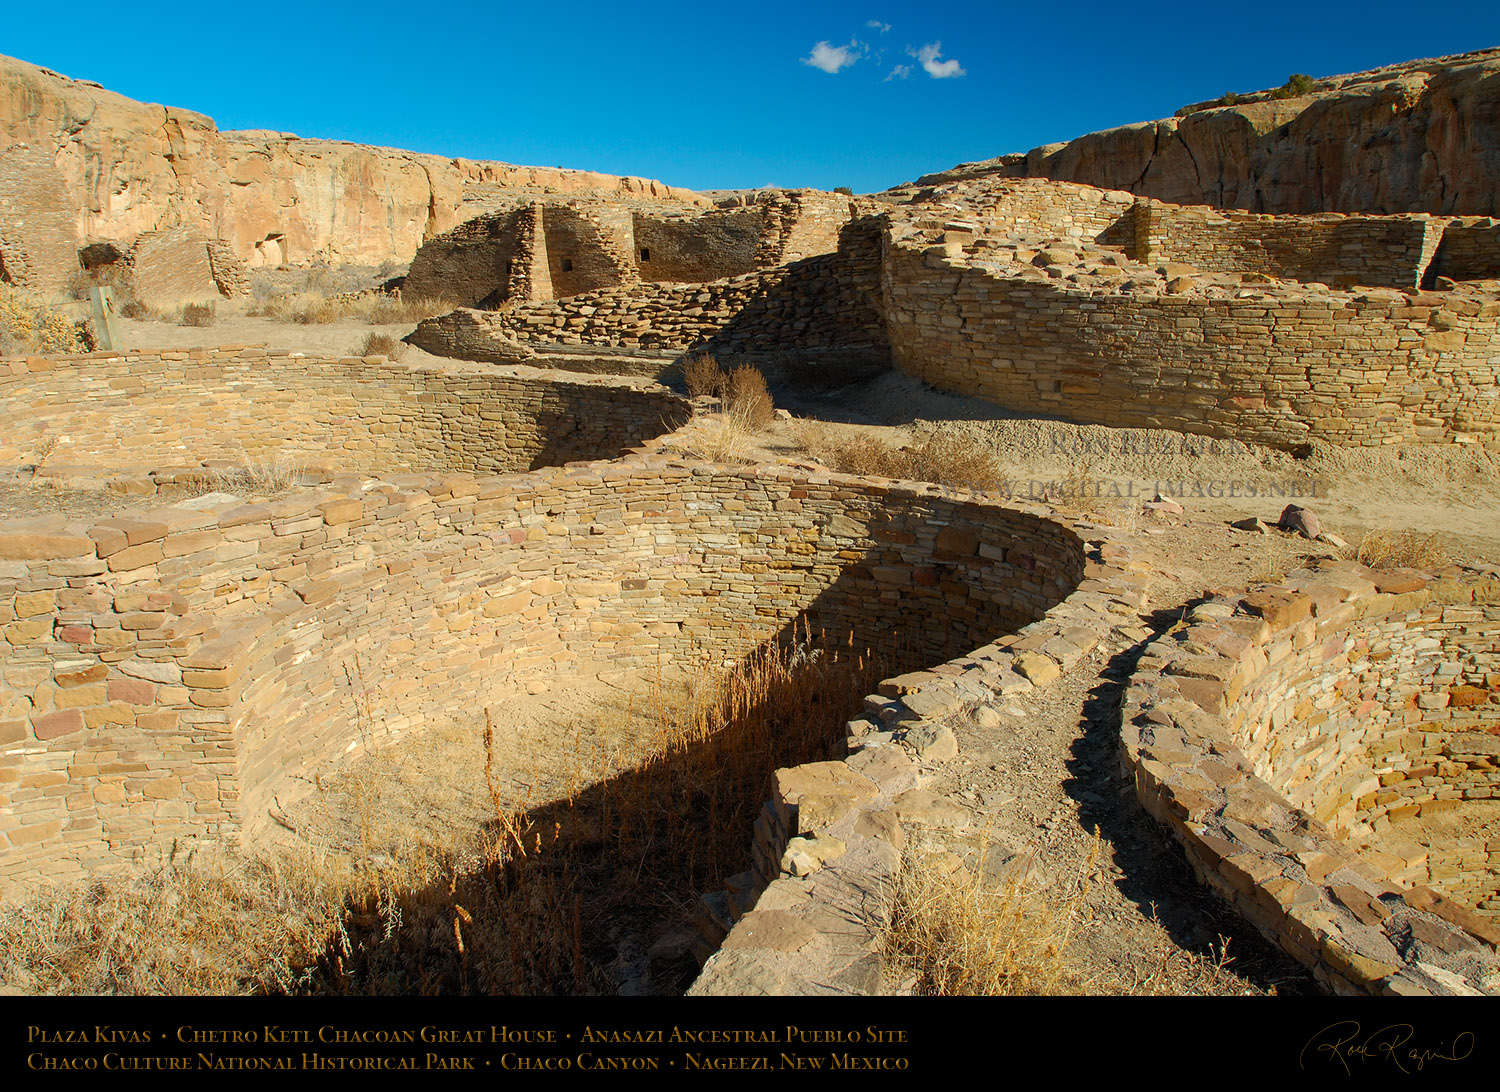 anasazi great houses of the chaco